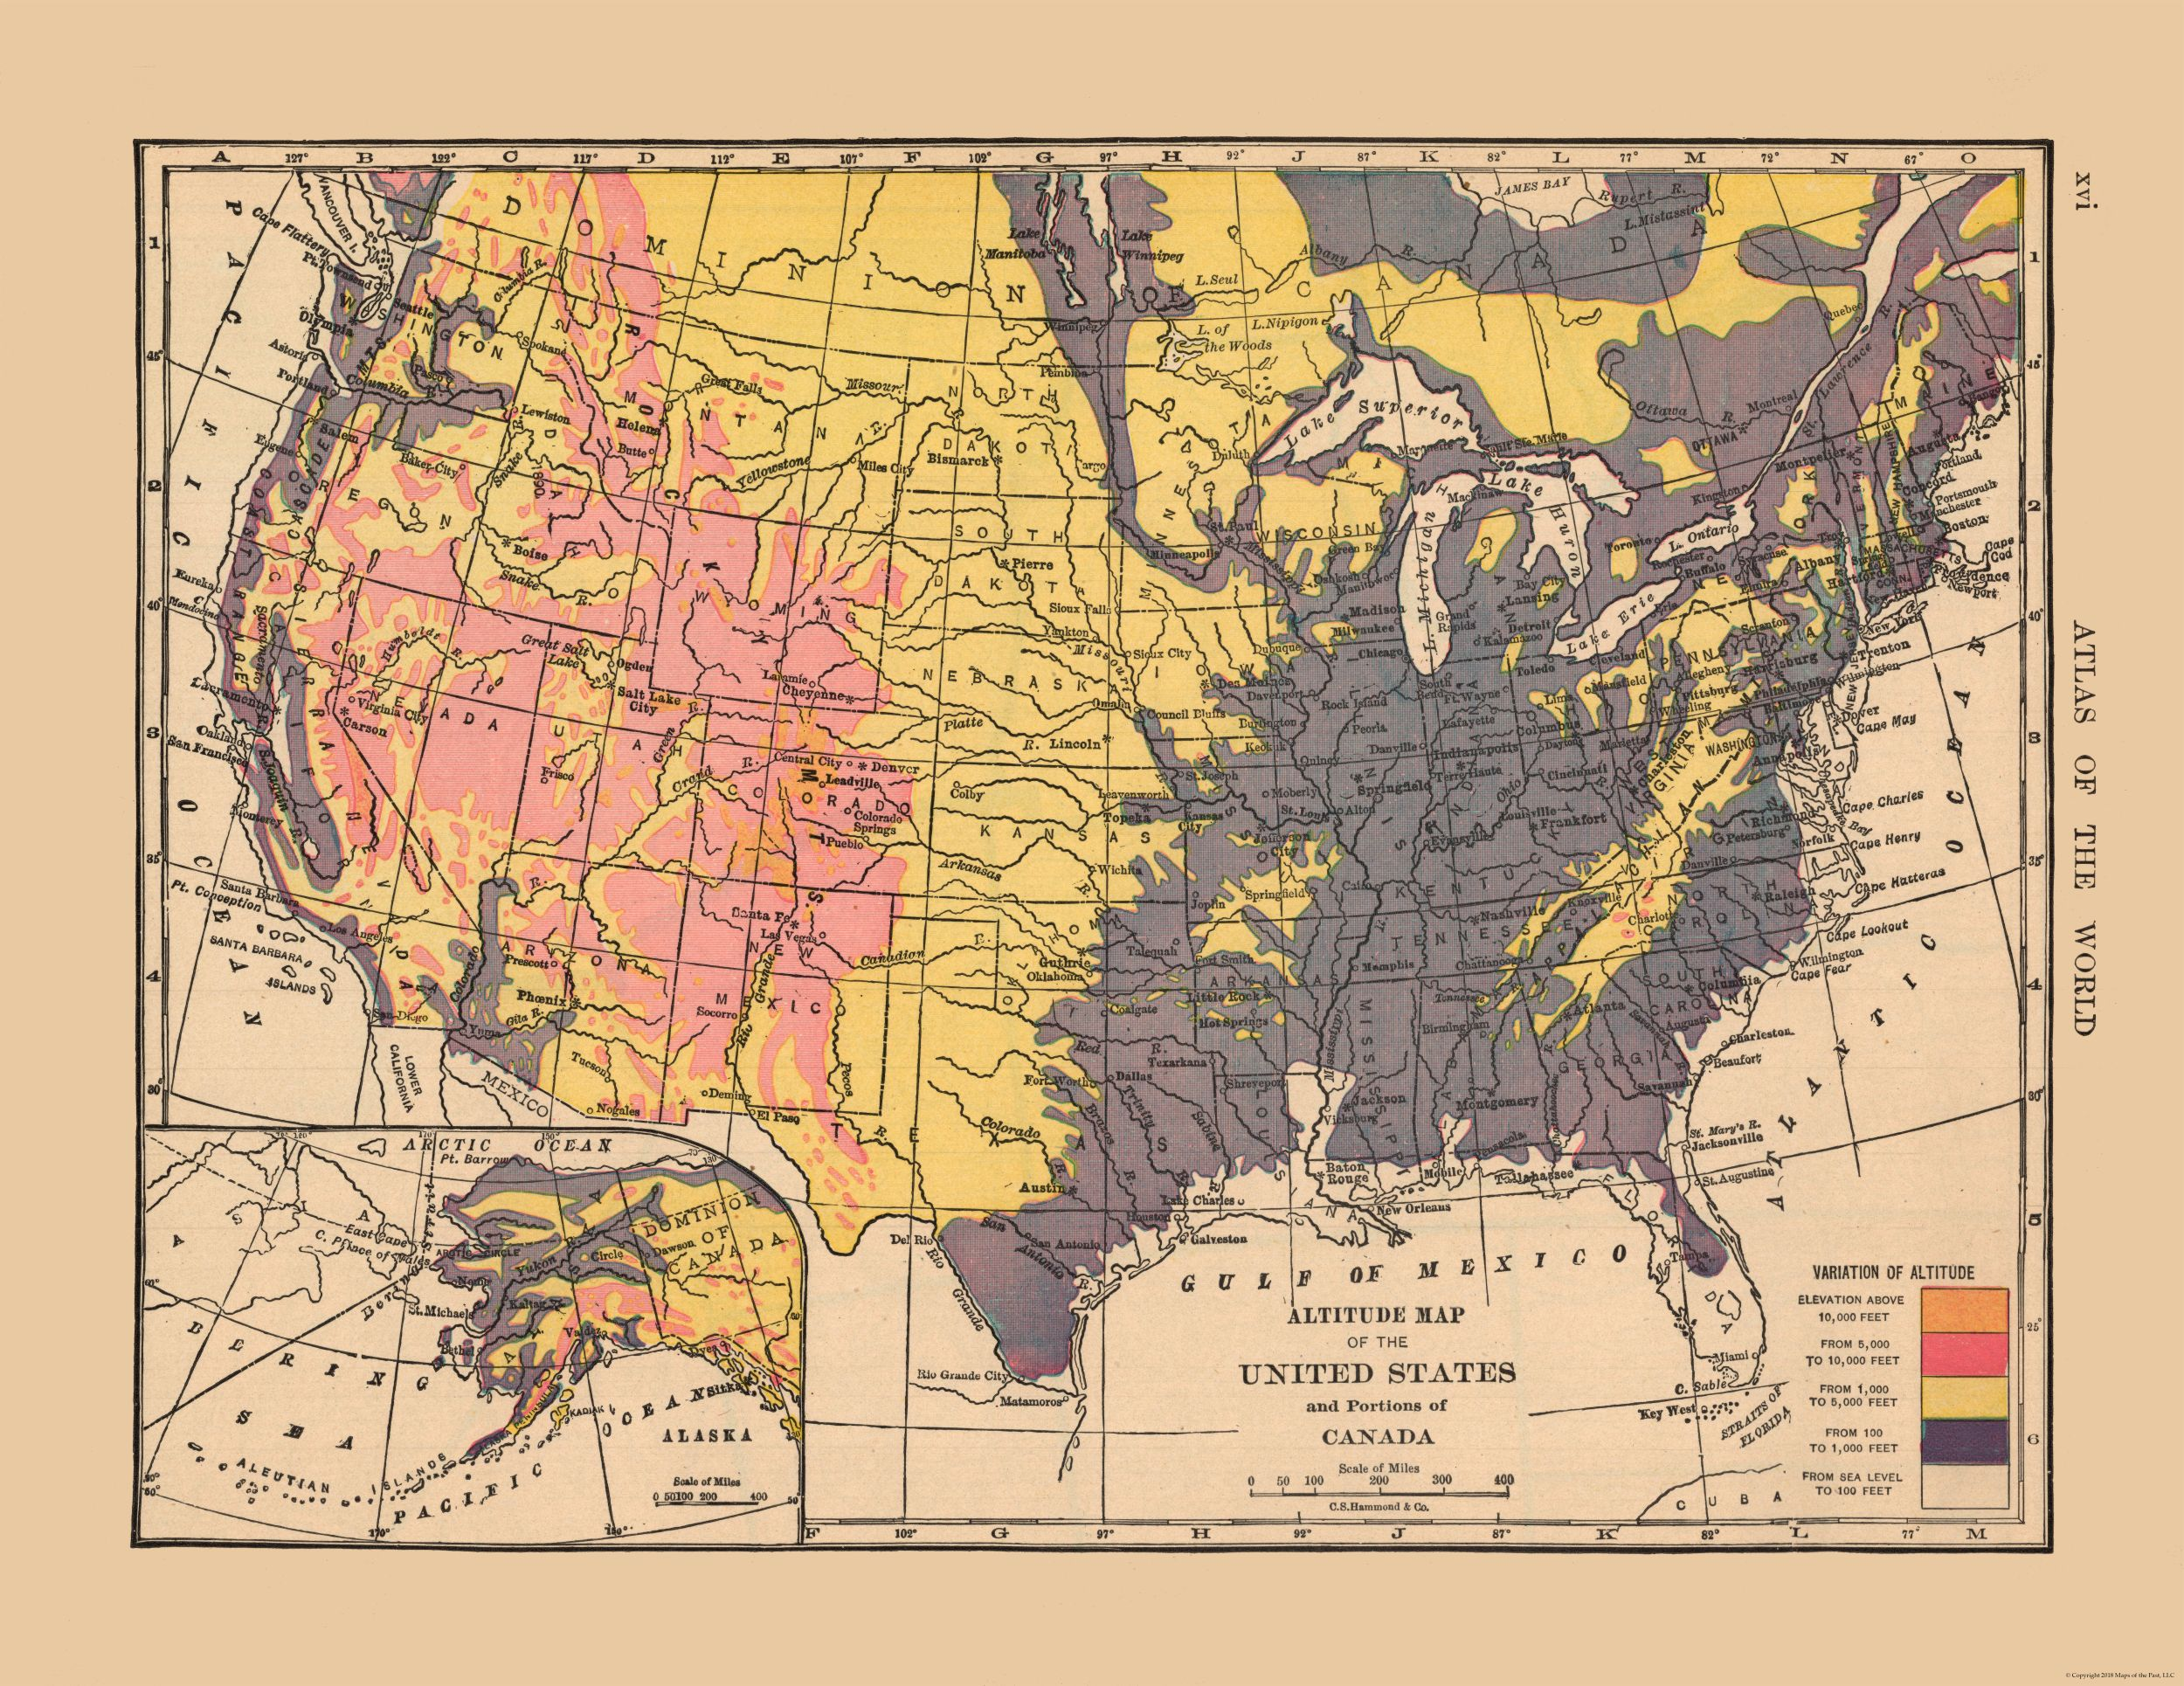 Old State Map - Altitude Map of US, Canada - Hammond\'s Atlas 1910 - 29.79 x  23